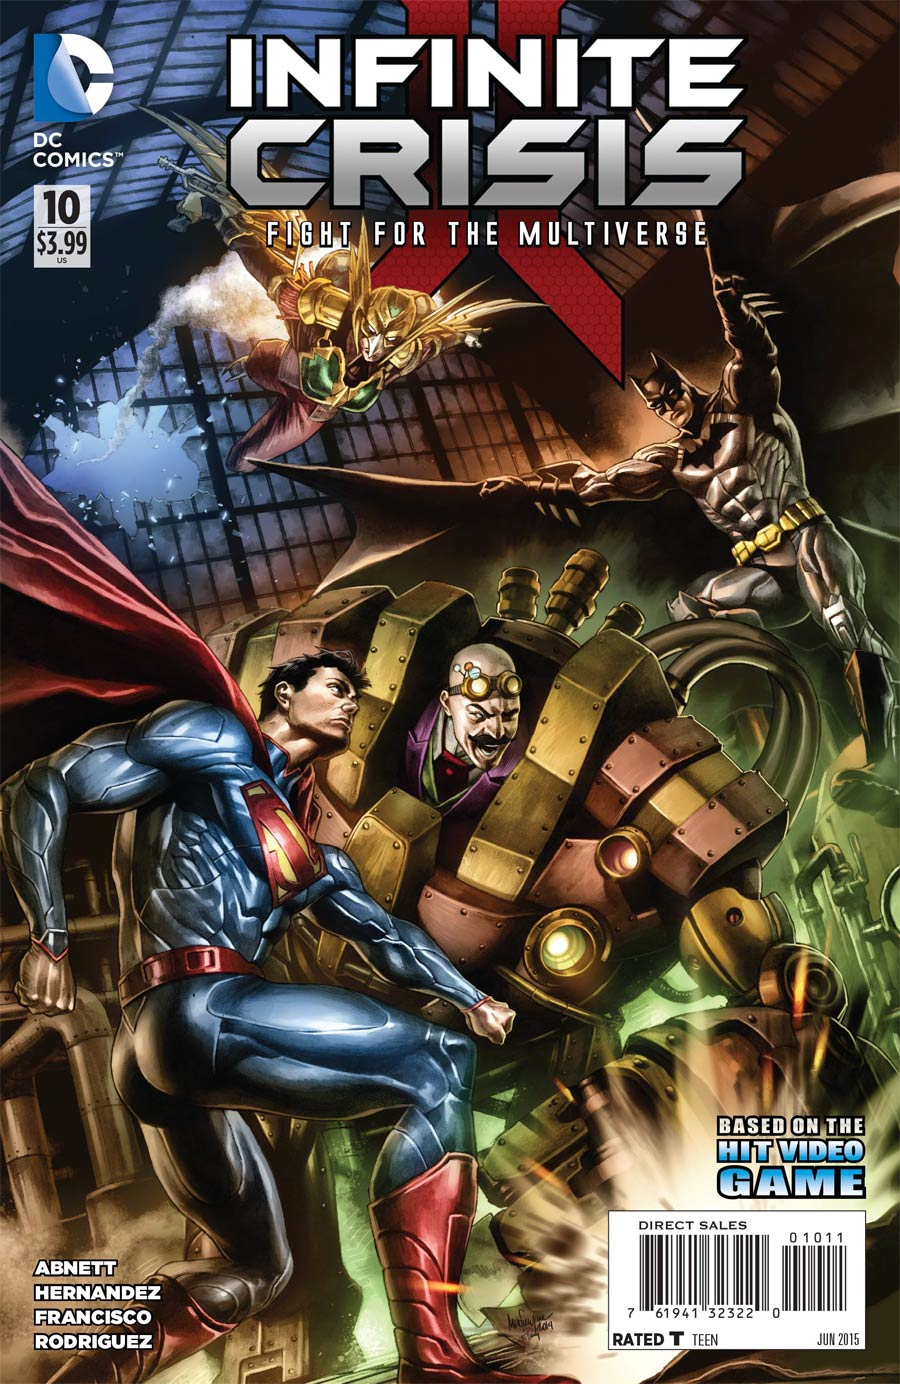 Infinite Crisis Fight For The Multiverse #10